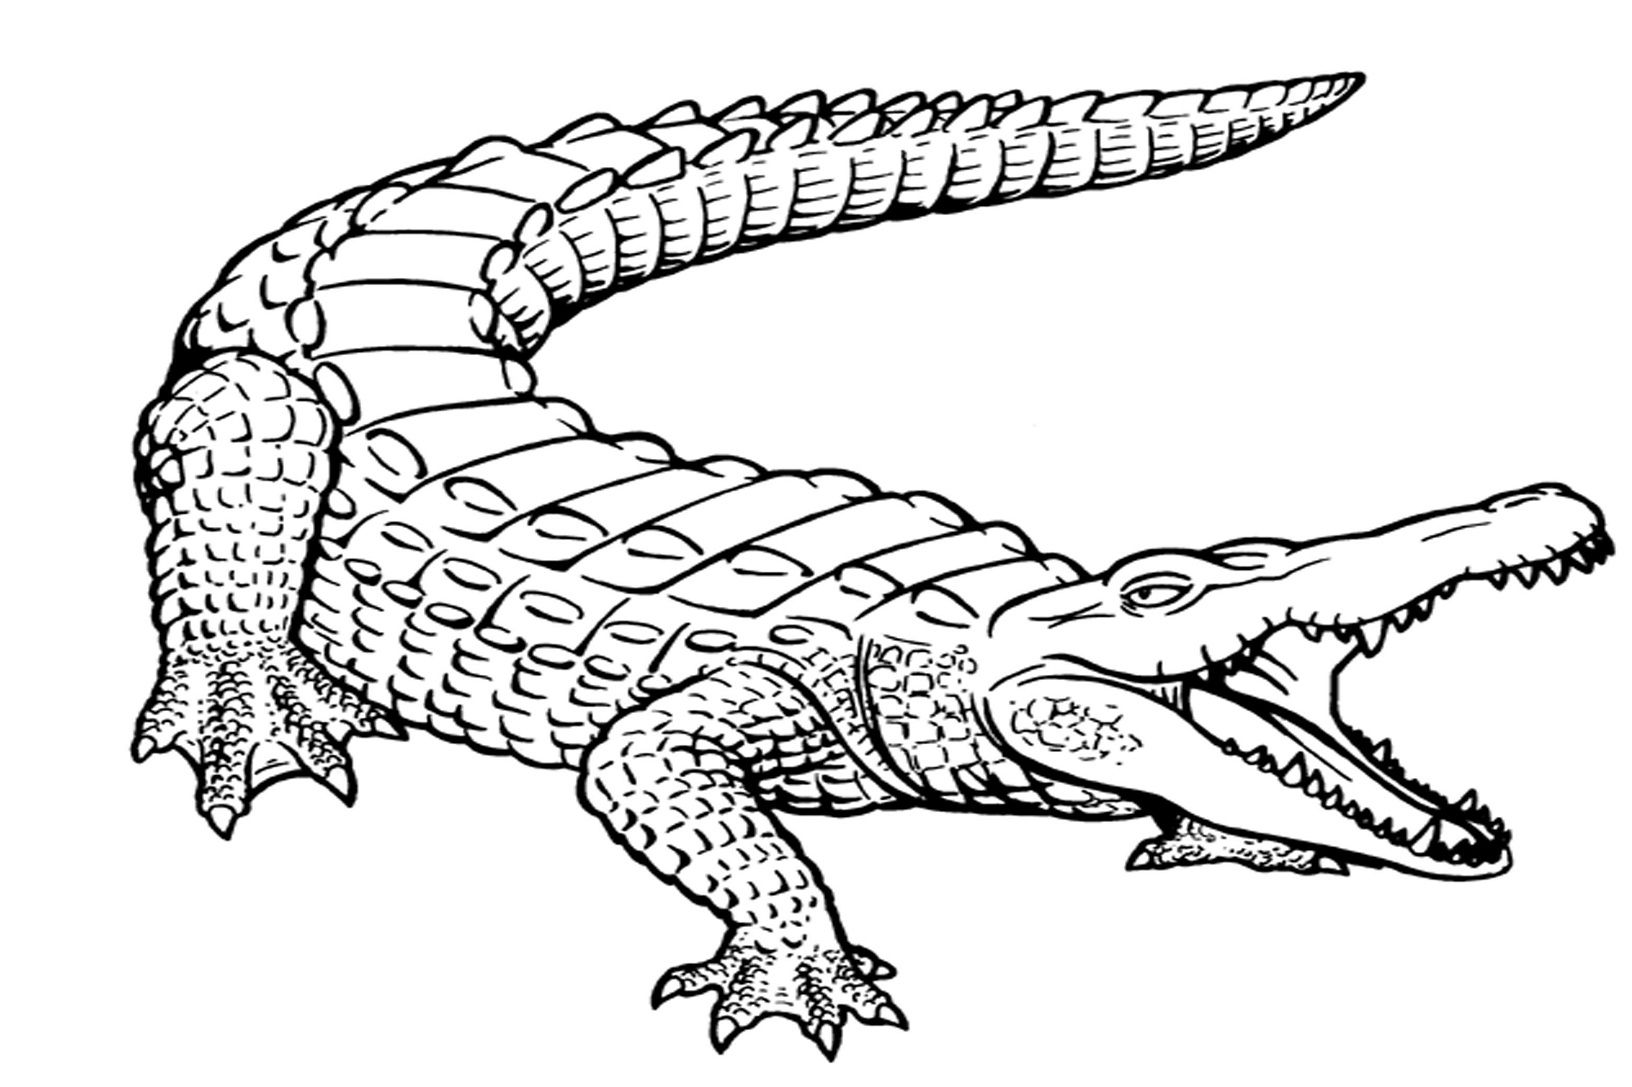 Free Printable Alligator Coloring Pages For Kids Crocodile Illustration Animal Coloring Pages Coloring Pages For Kids